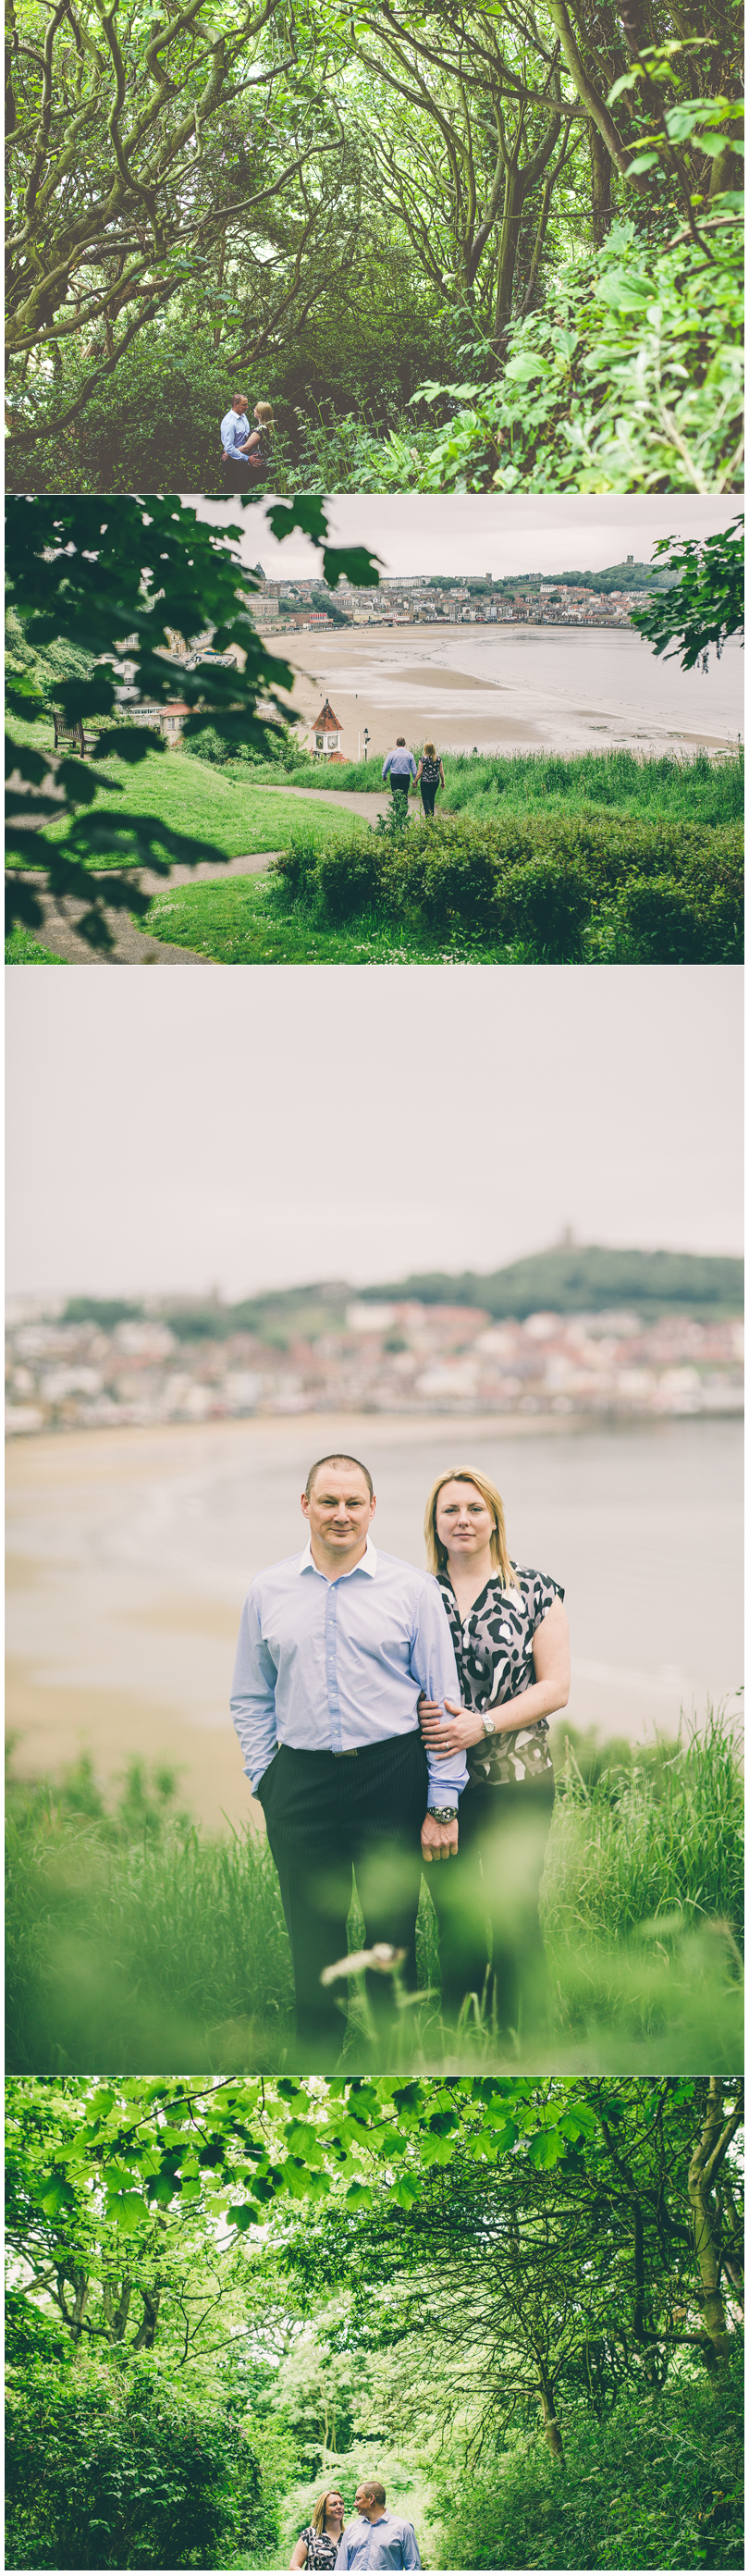 Scarborough York Yorkshire Wedding Photographer Yorkshire Engagement Pre Wedding Shoot Esplanade South Cliff Scarborough